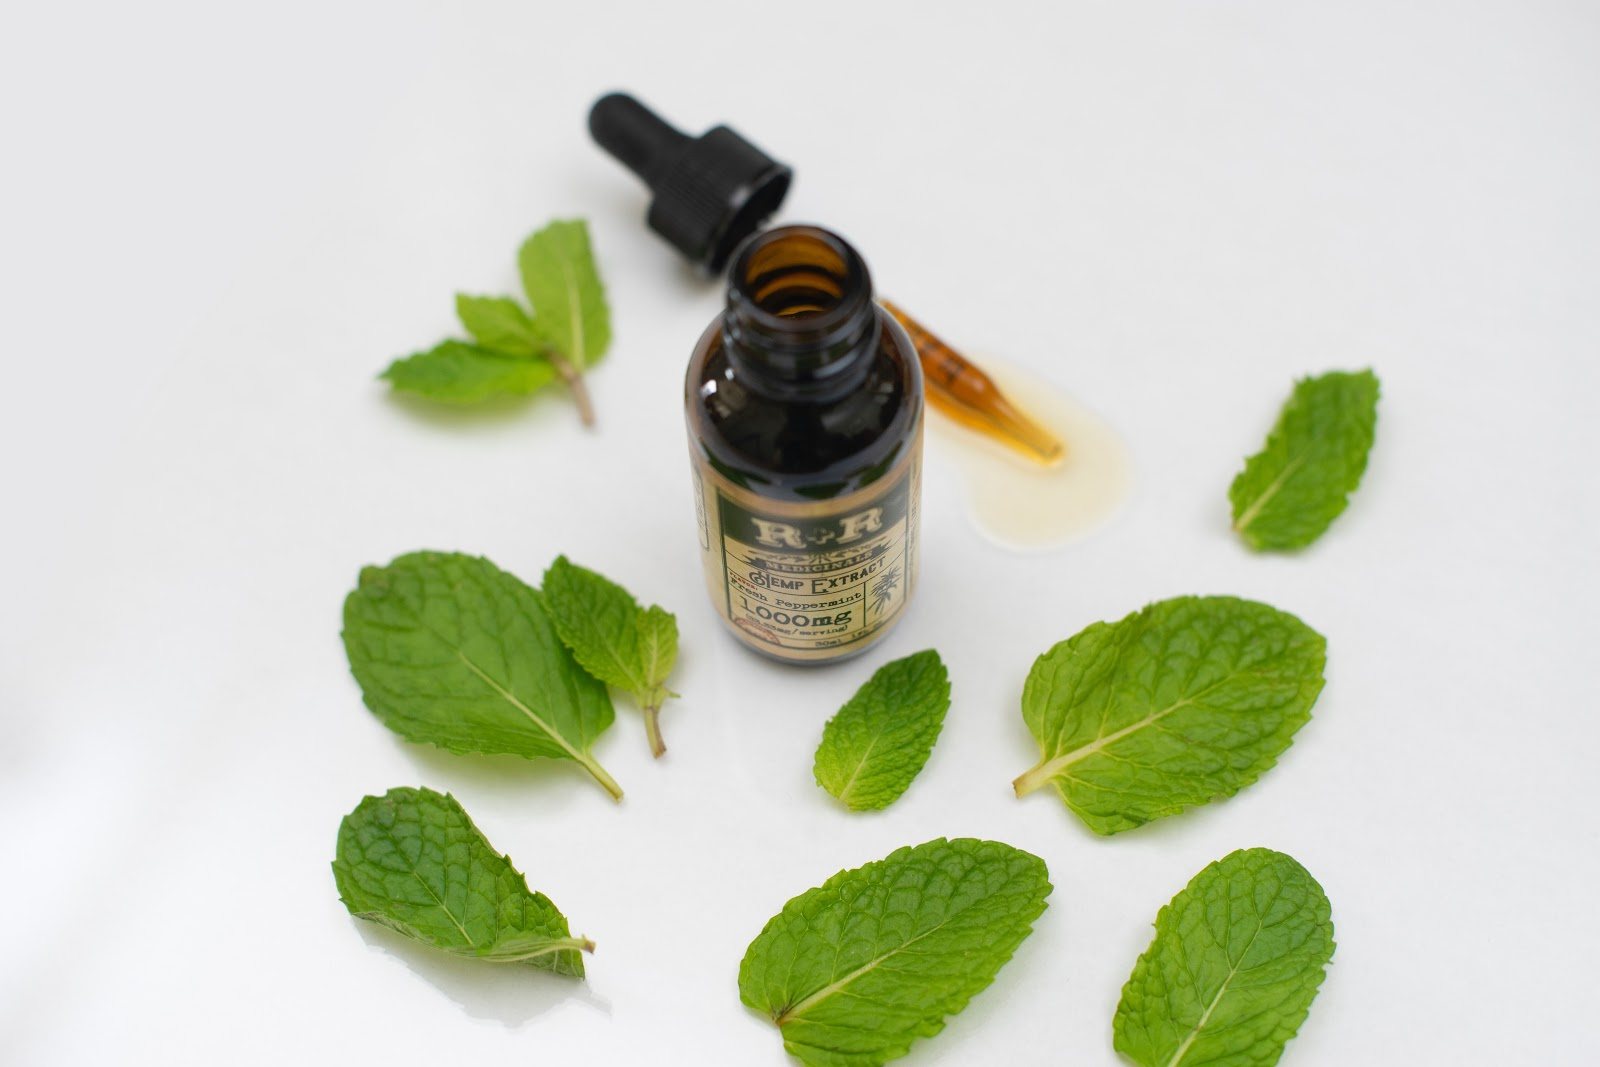 CBD oil surrounded by mint leaves